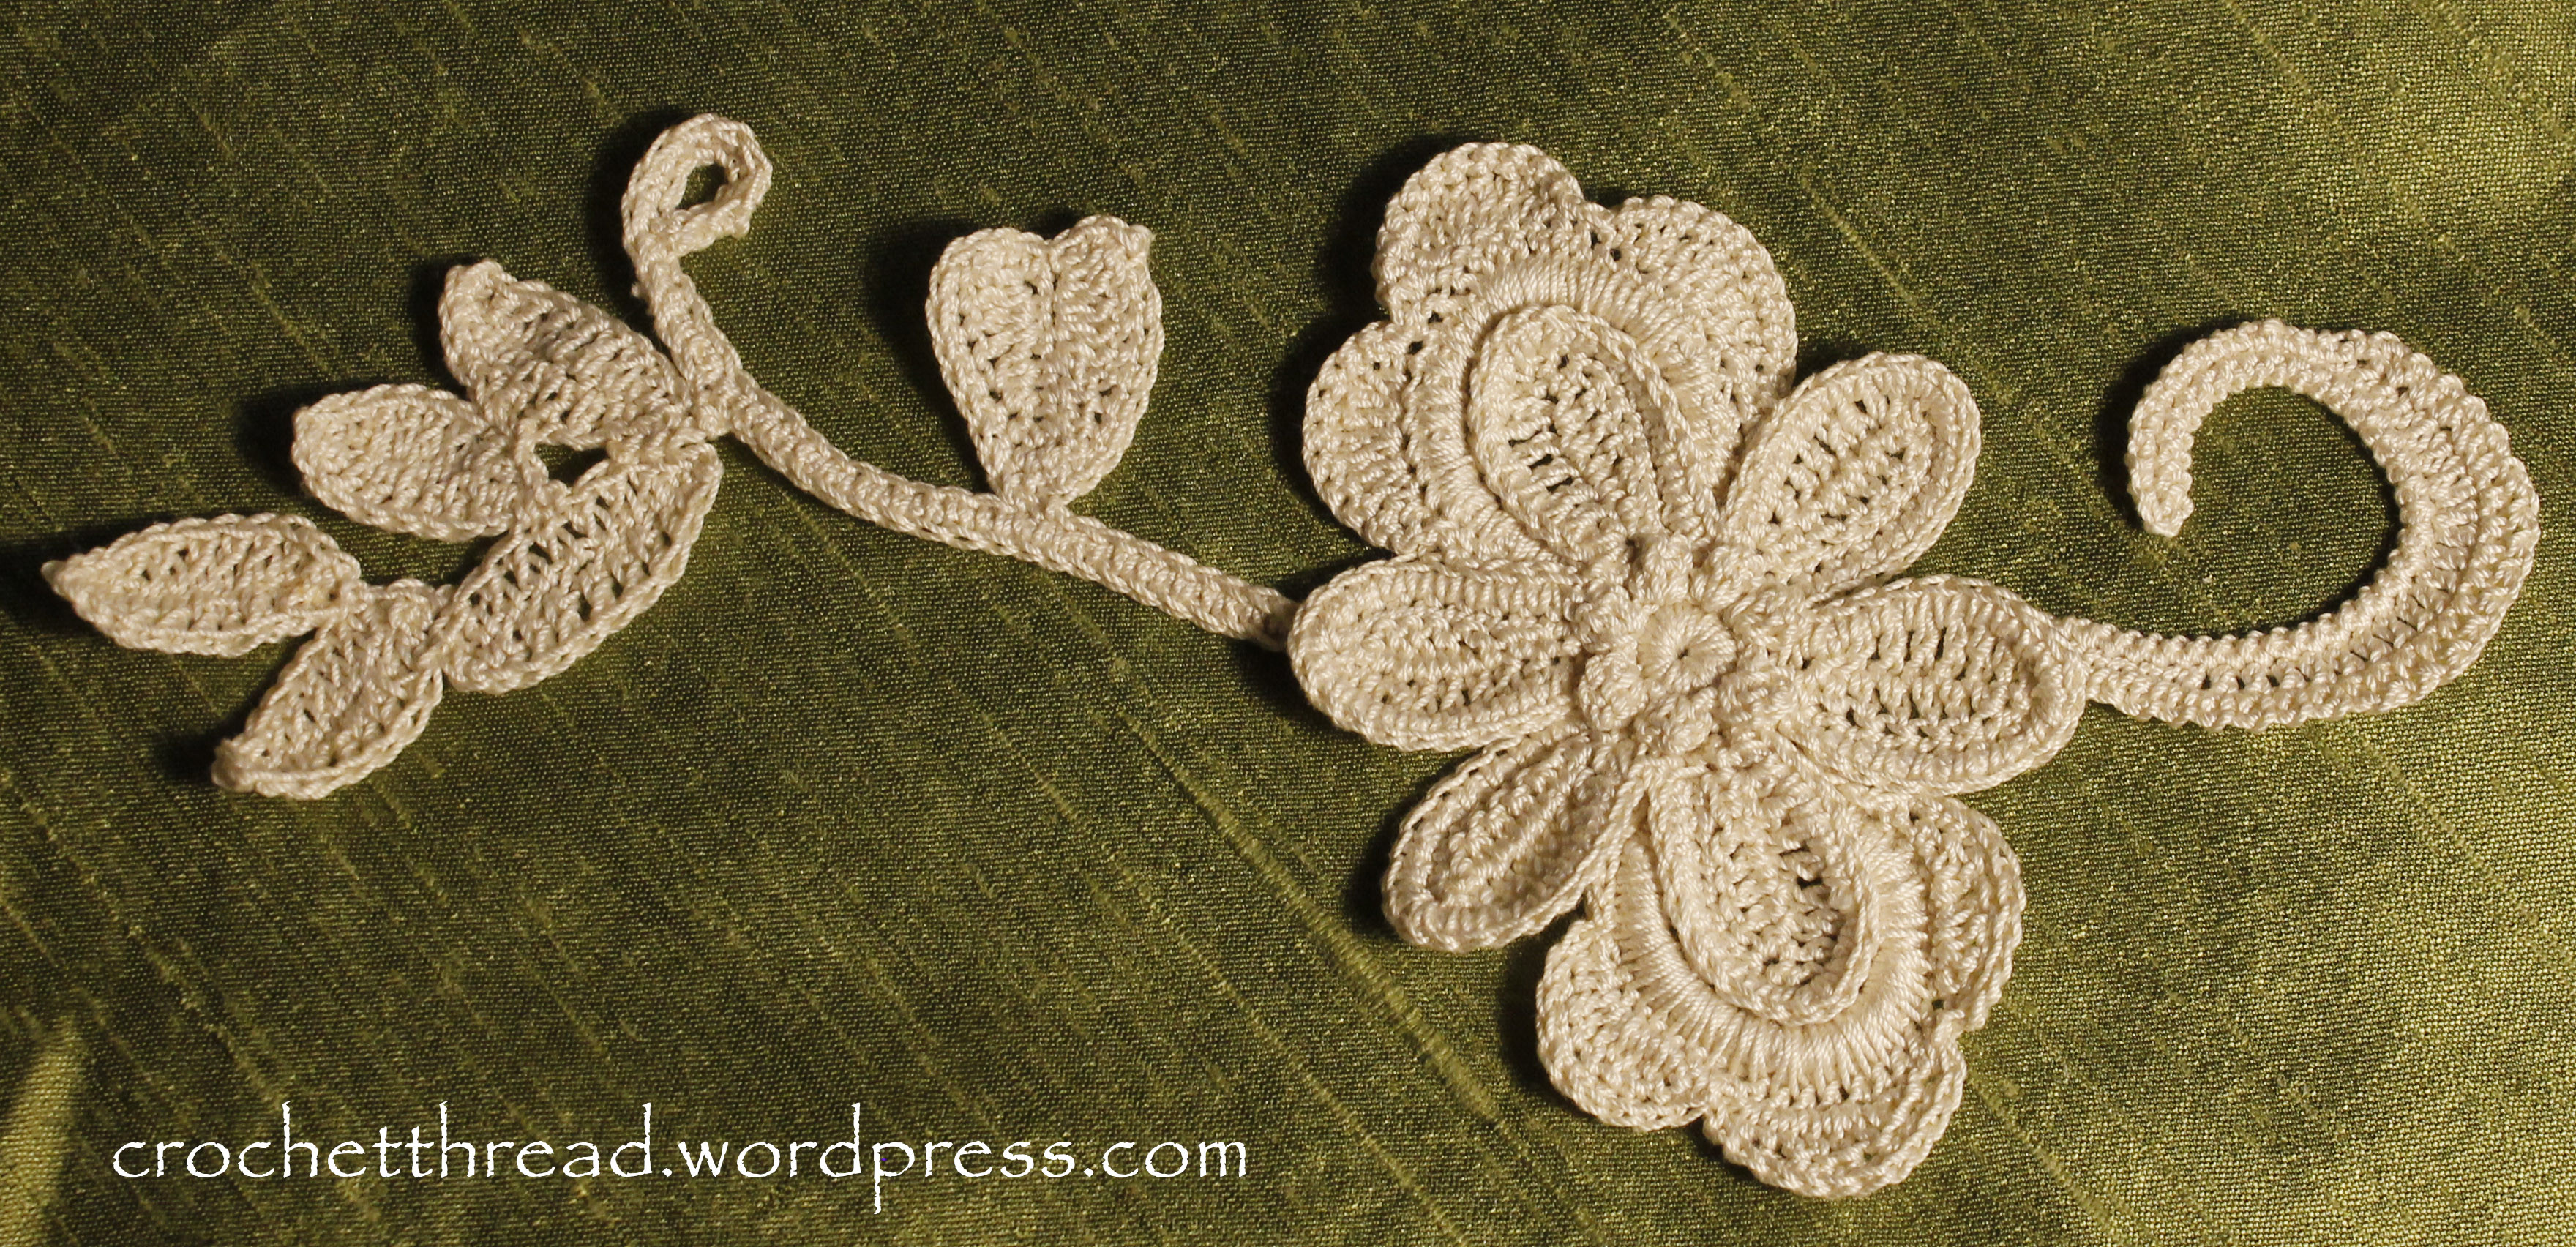 Best Of Irish Crochet Tutorial for Beginners Irish Crochet Lace Of Wonderful 42 Images Irish Crochet Lace